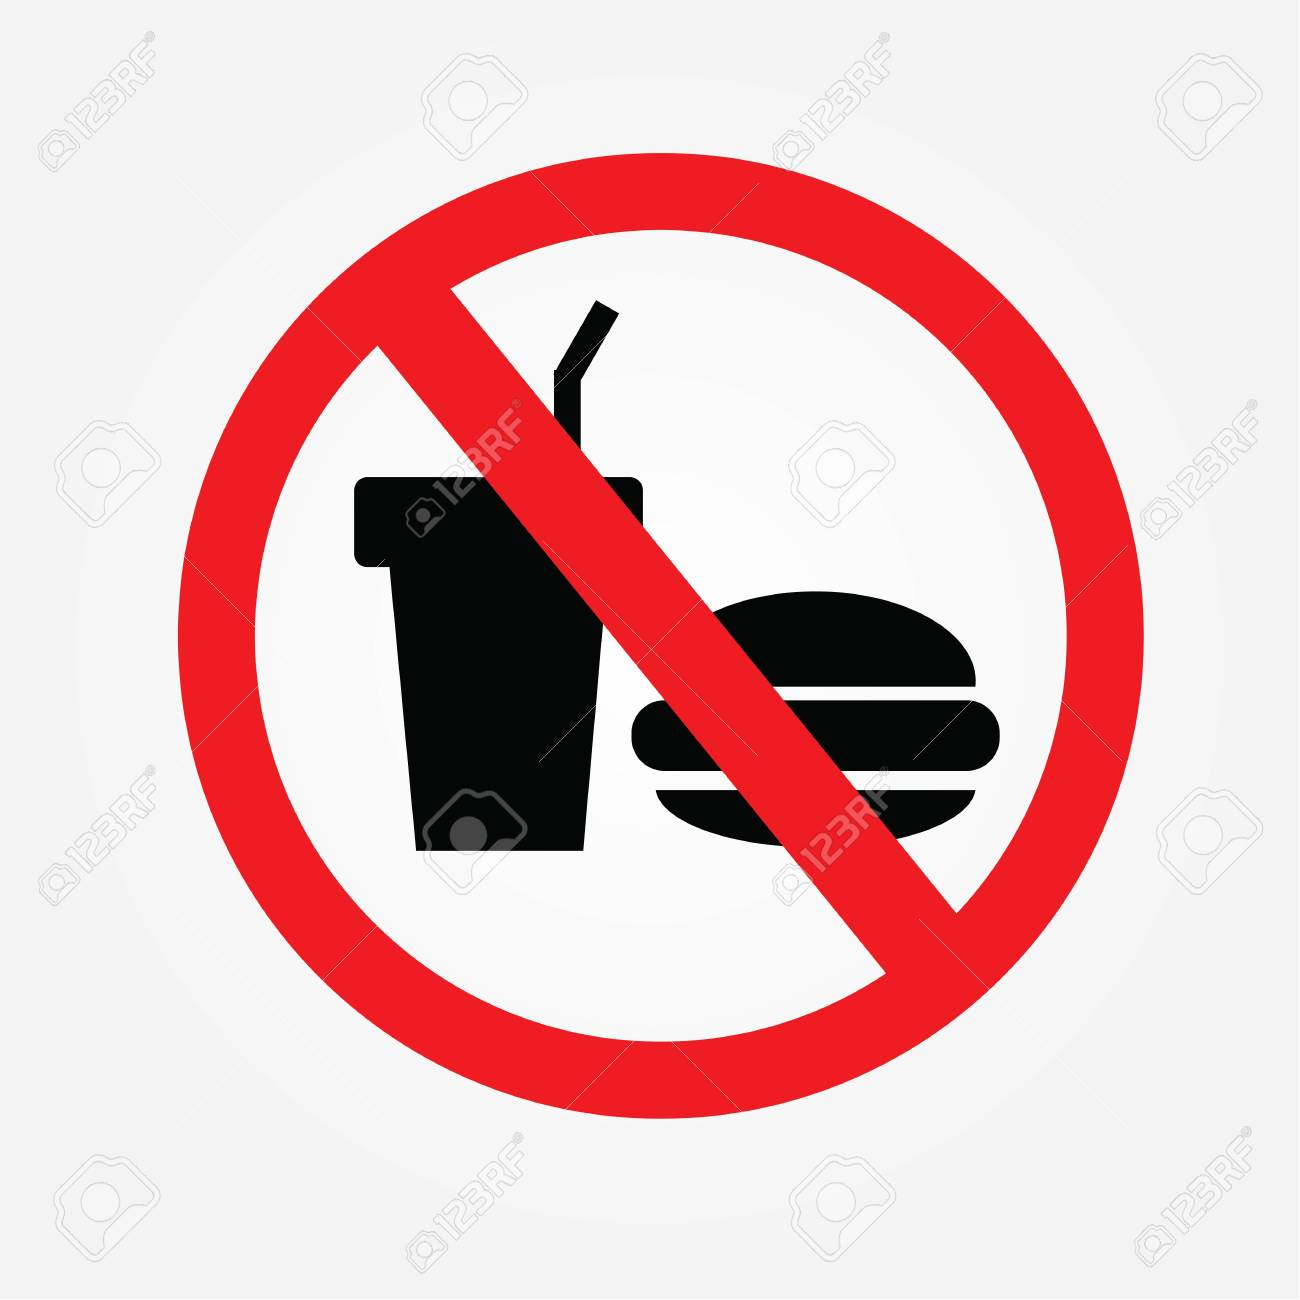 no cooking sign no food or drink allowed vector illustration rh 123rf com no food or drinks clipart no food or drink clipart